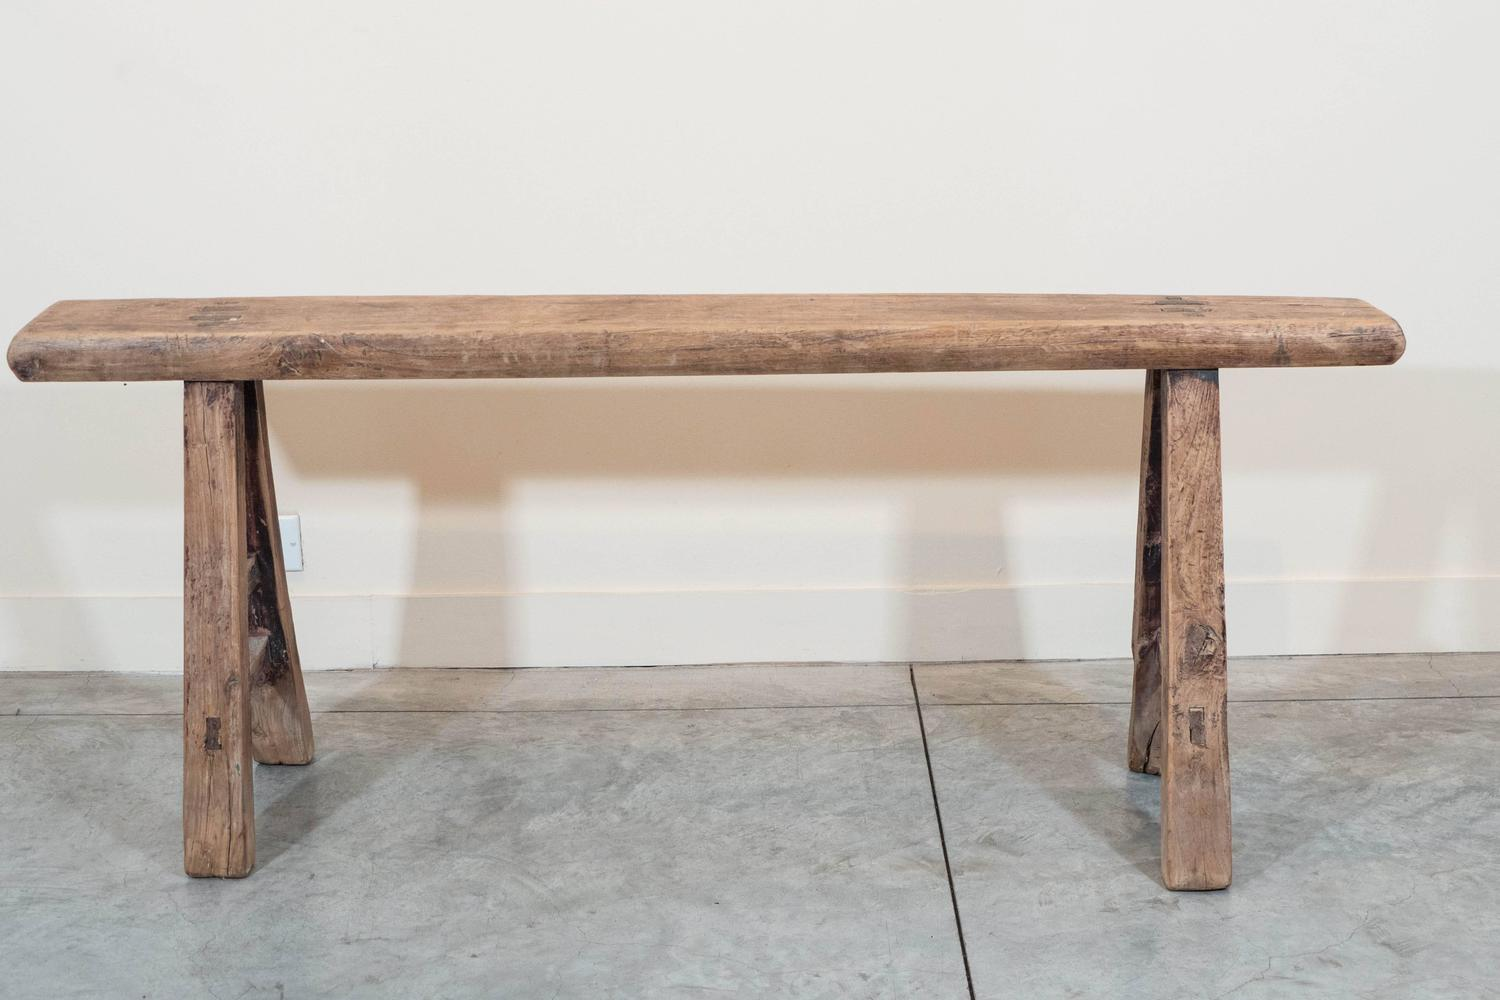 #80624B Narrow Country Bench At 1stdibs with 1500x1000 px of Brand New Small Narrow Bench 10001500 pic @ avoidforclosure.info